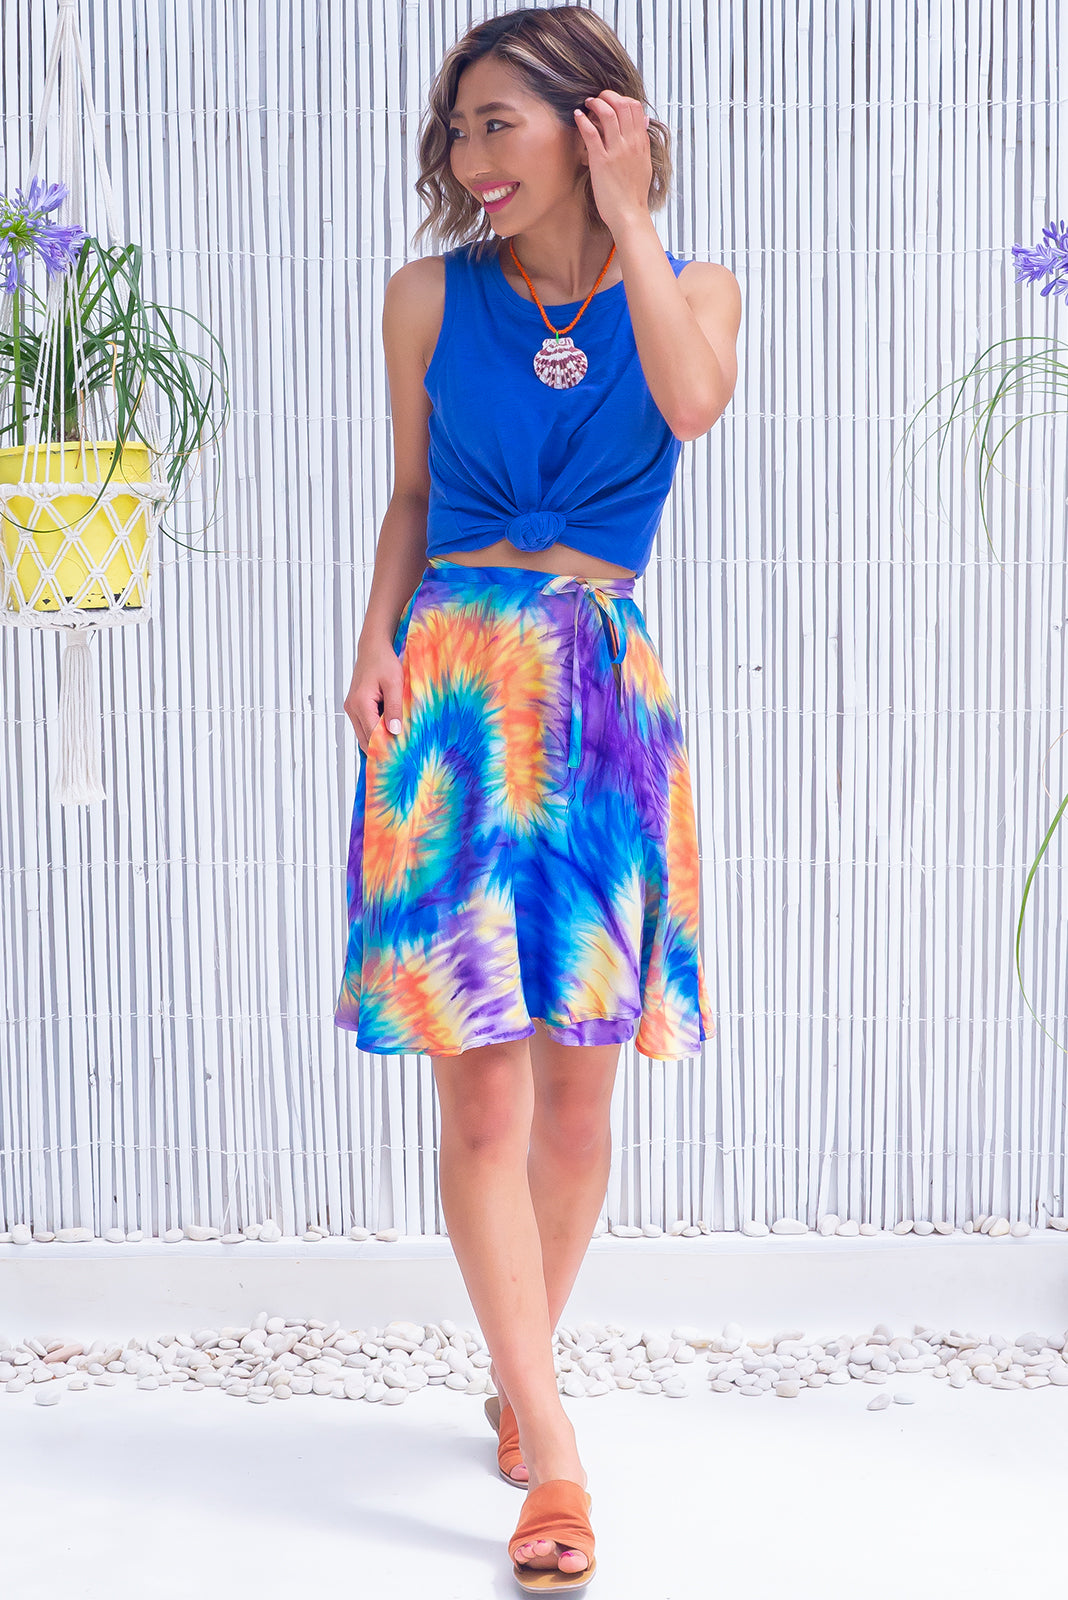 The Flamingo Party Time Wrap Skirt is a wrap around design skirt featuring elasticated back of waist, side pockets and woven 100% viscose in cobalt, purple, yellow, orange fireworks/tie dye effect.